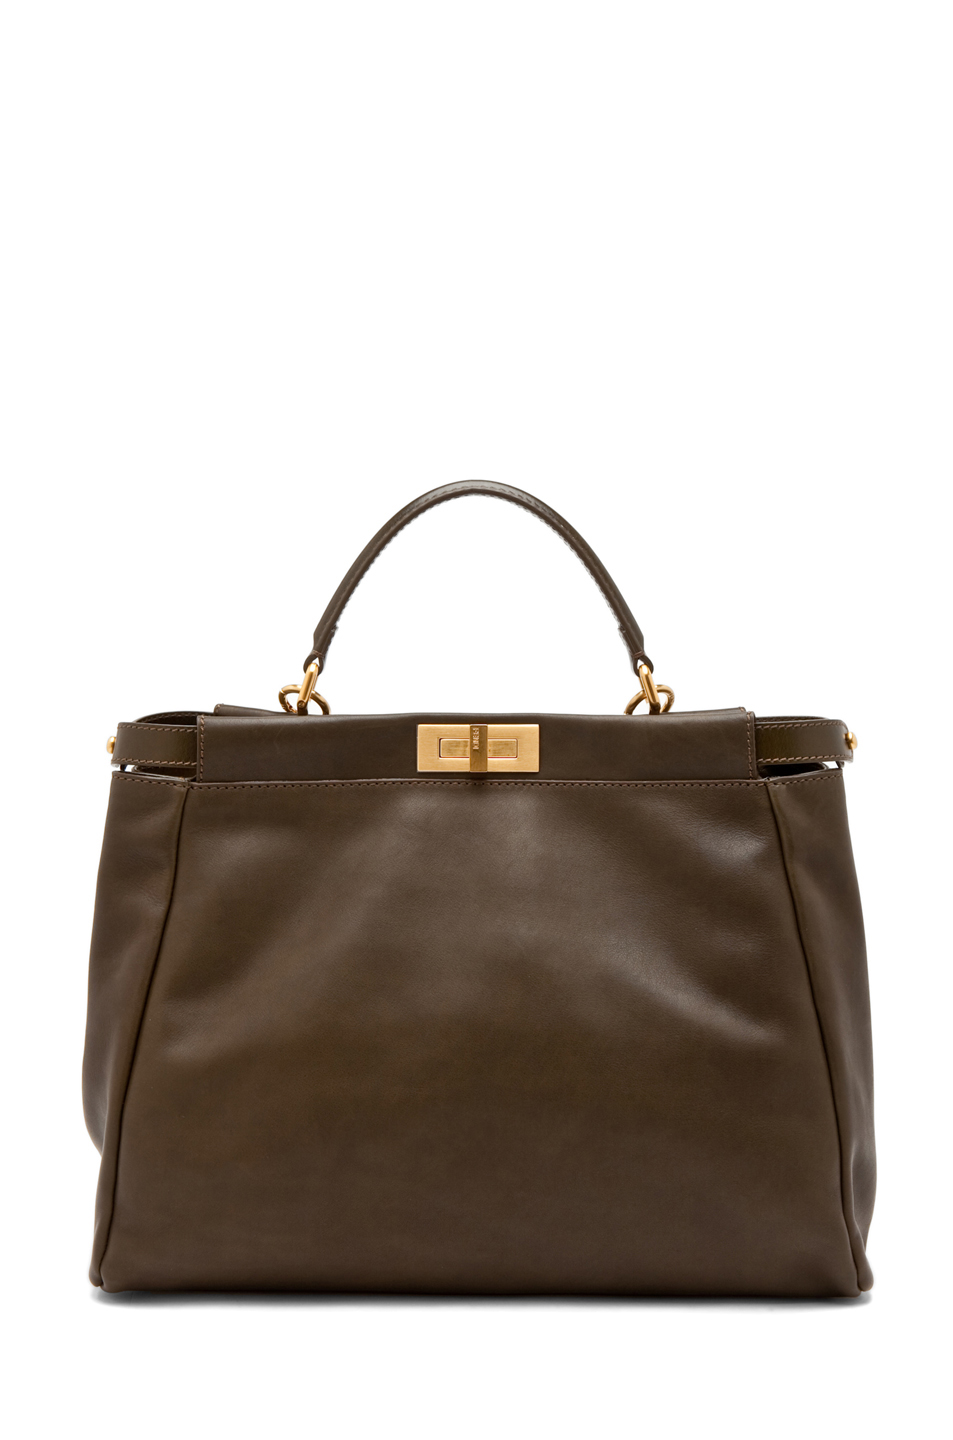 Fendi|Peekaboo Handbag in Olive